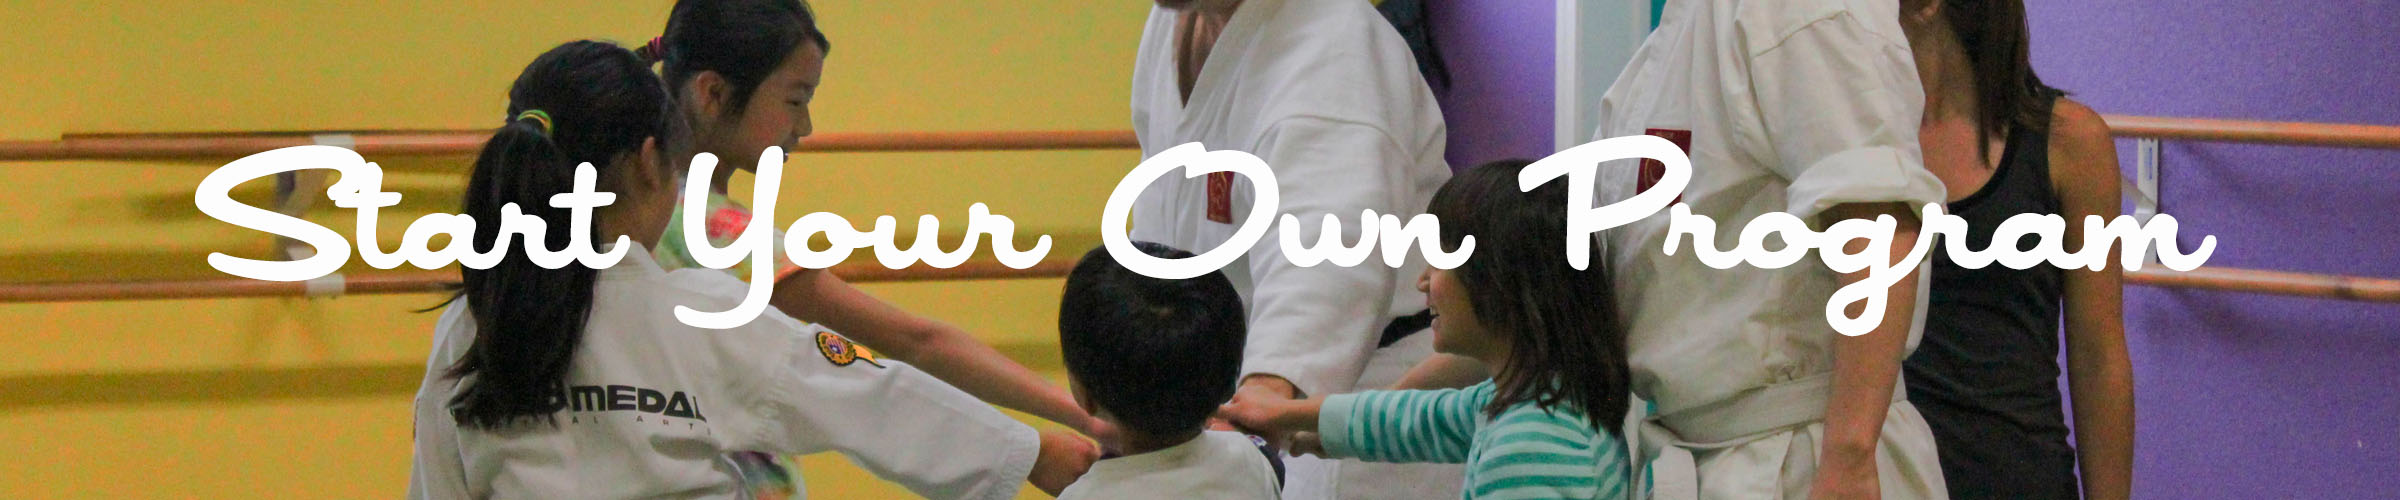 Start your own program banner